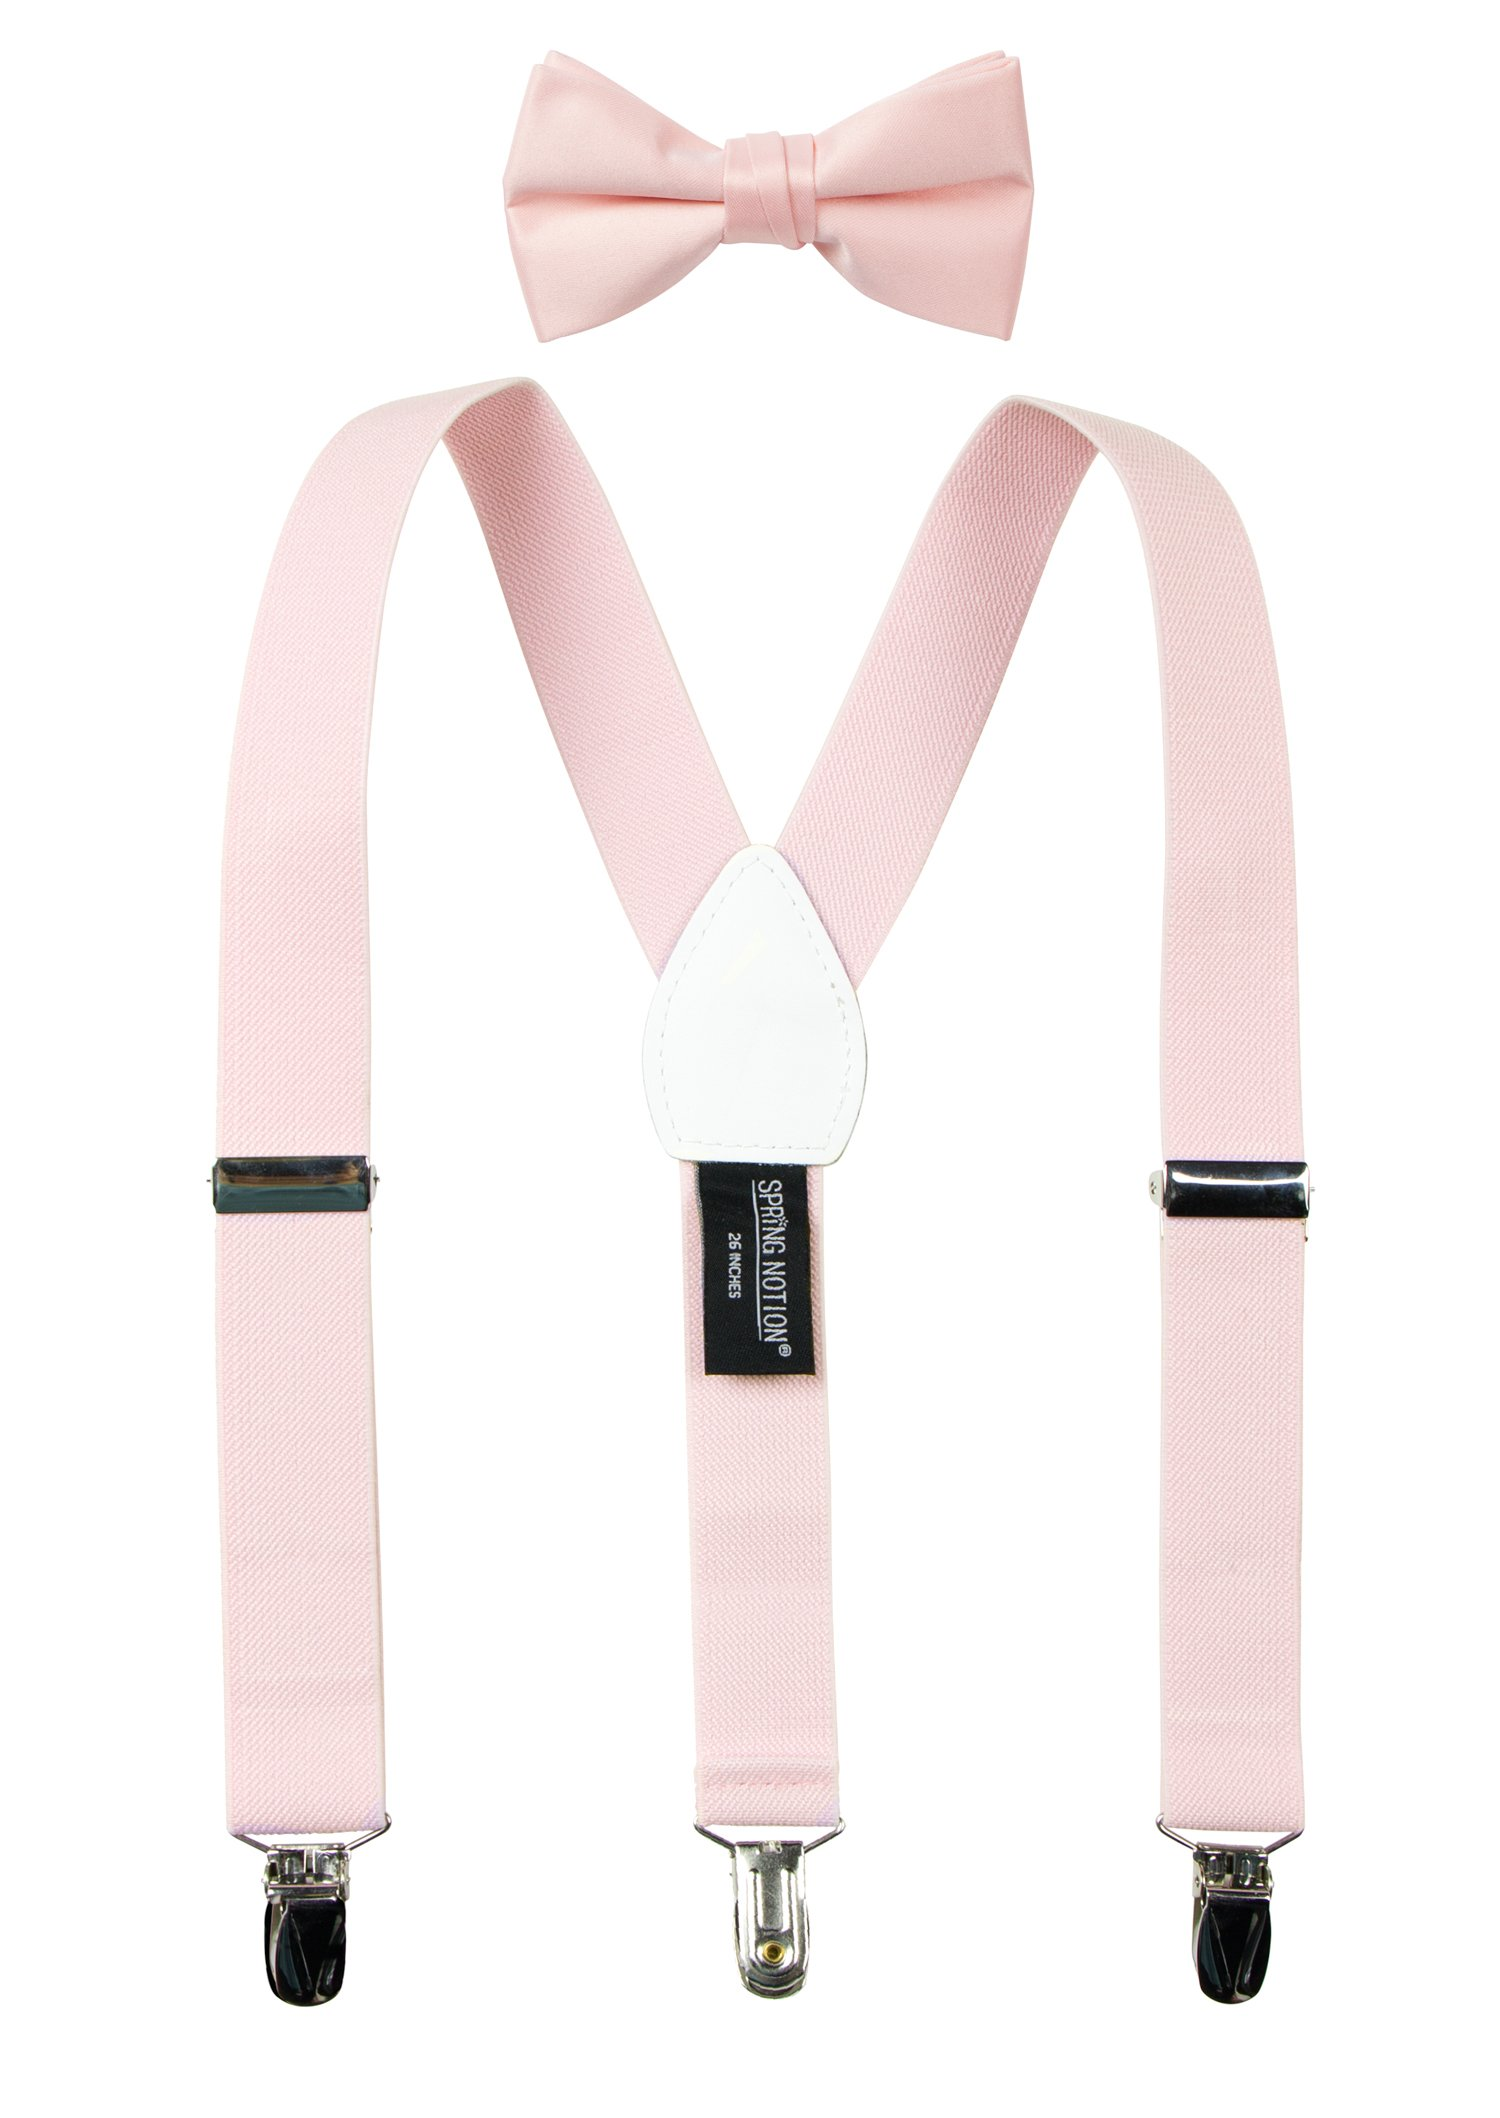 Spring Notion Boys' Suspenders and Solid Color Bowtie Set Blush Pink Small